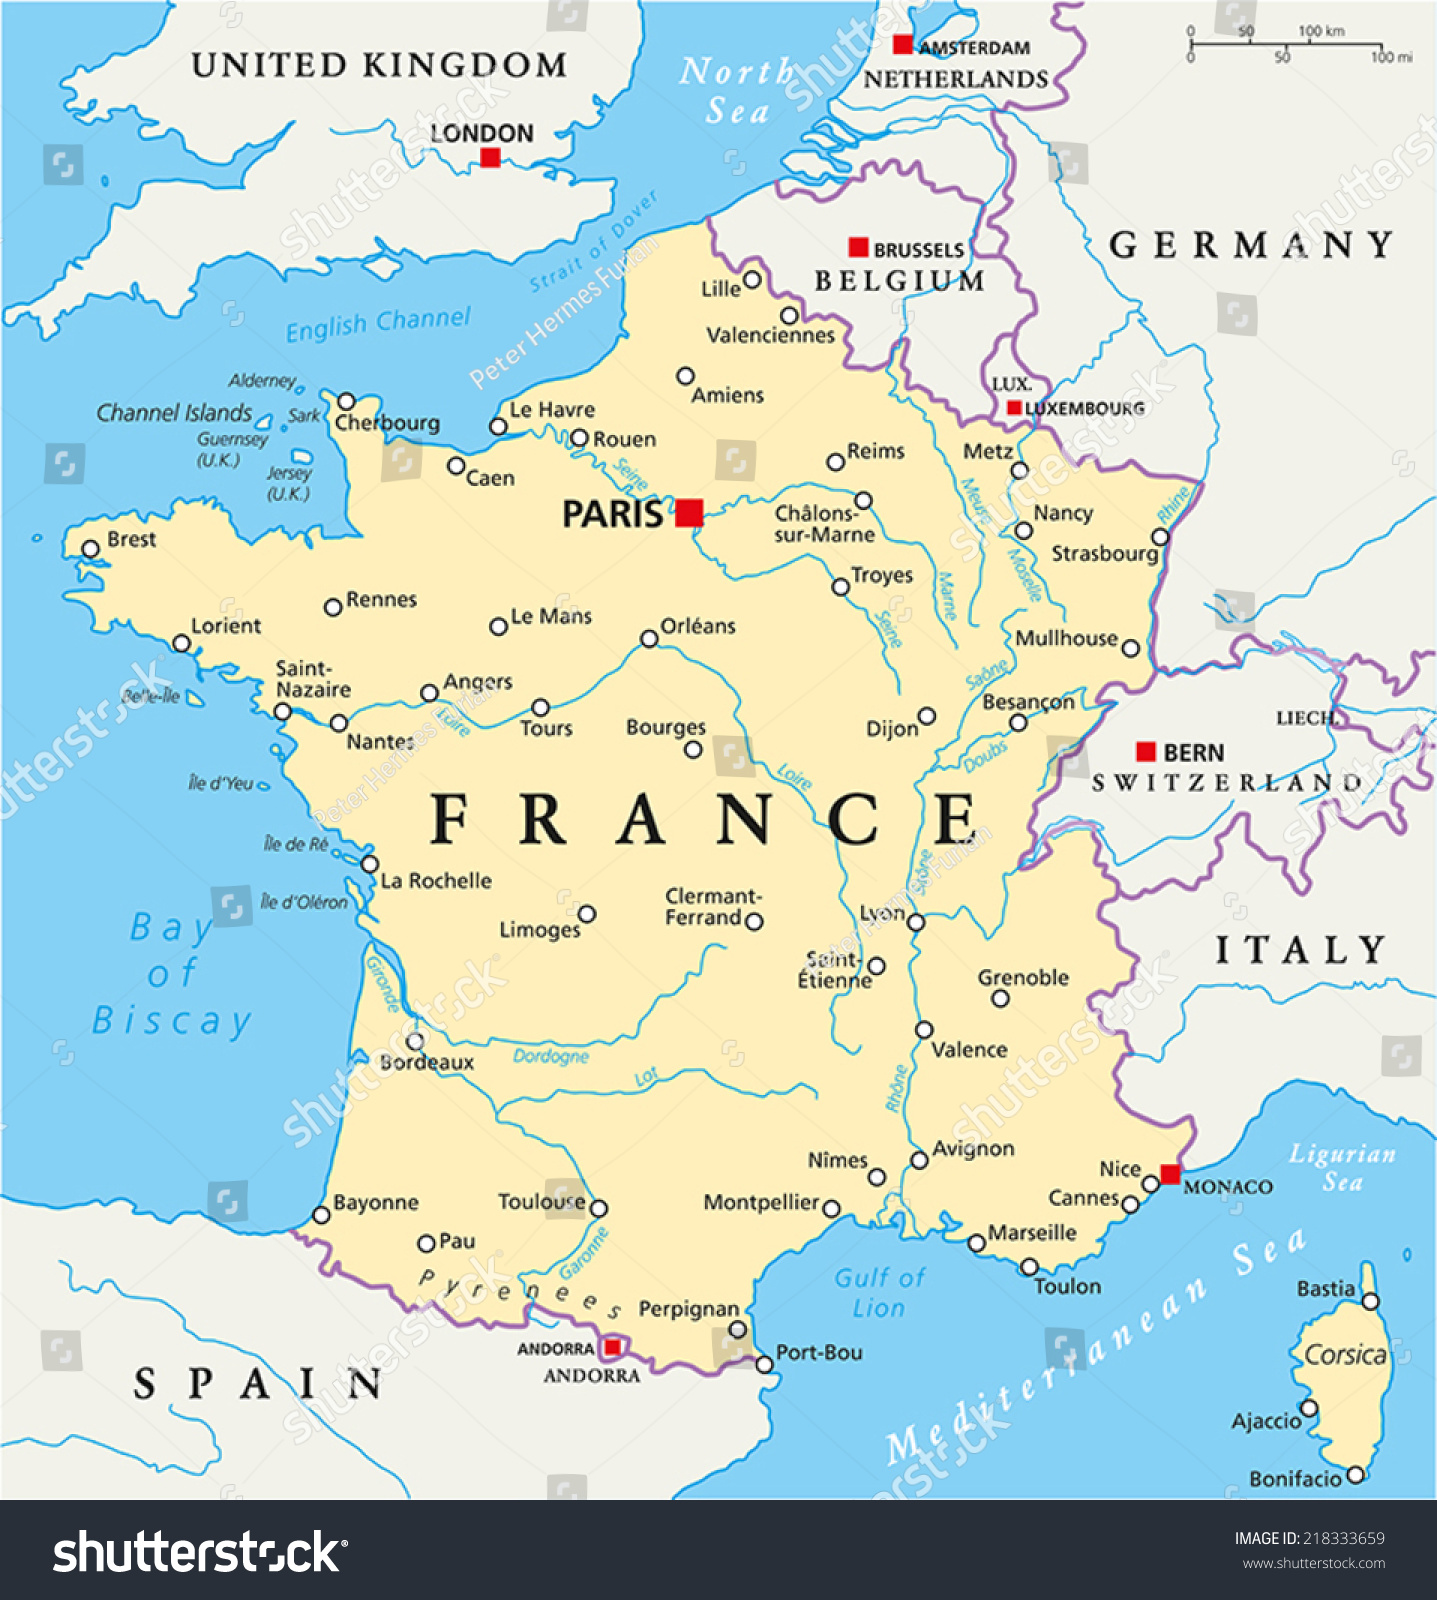 France Political Map with capital Paris, national borders, most ...: www.shutterstock.com/pic-218333659/stock-vector-france-political...